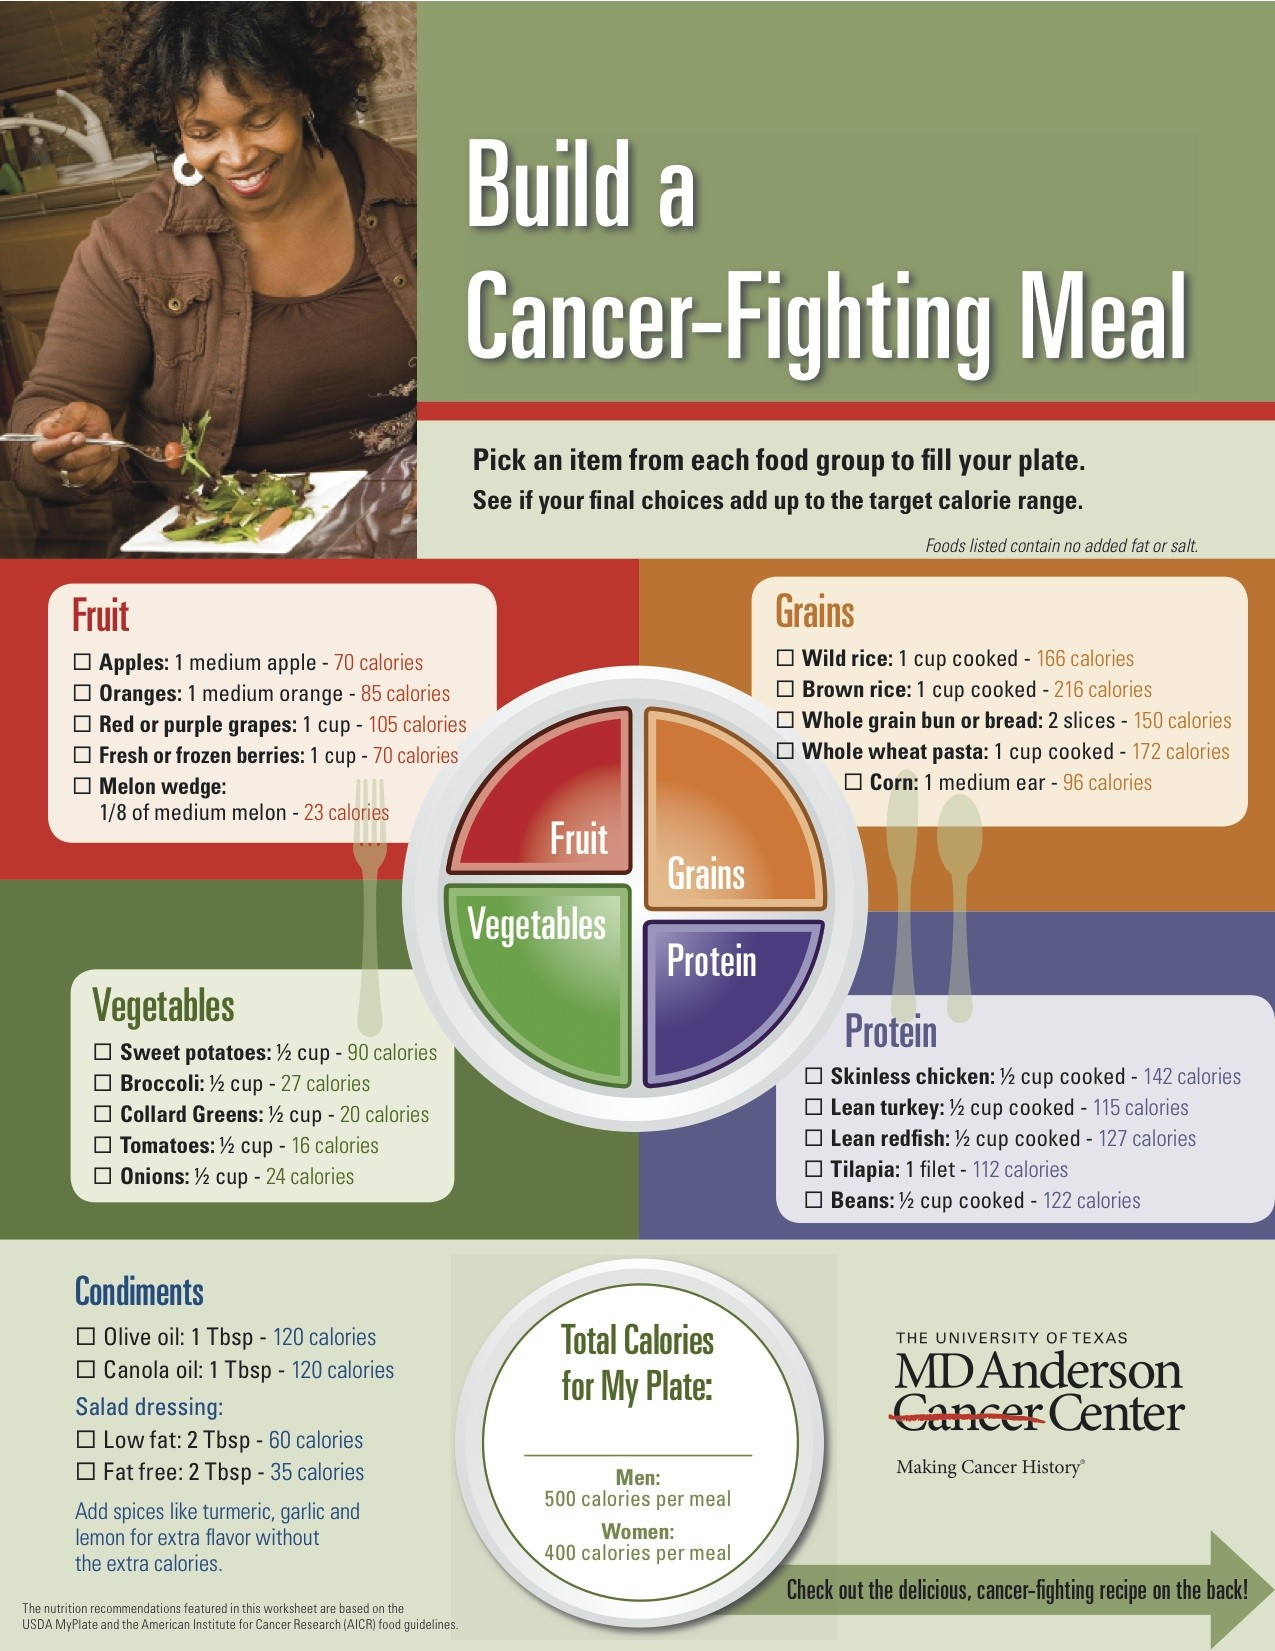 Cancer Fighting Meal Plans Aim To Curb Disparities Among